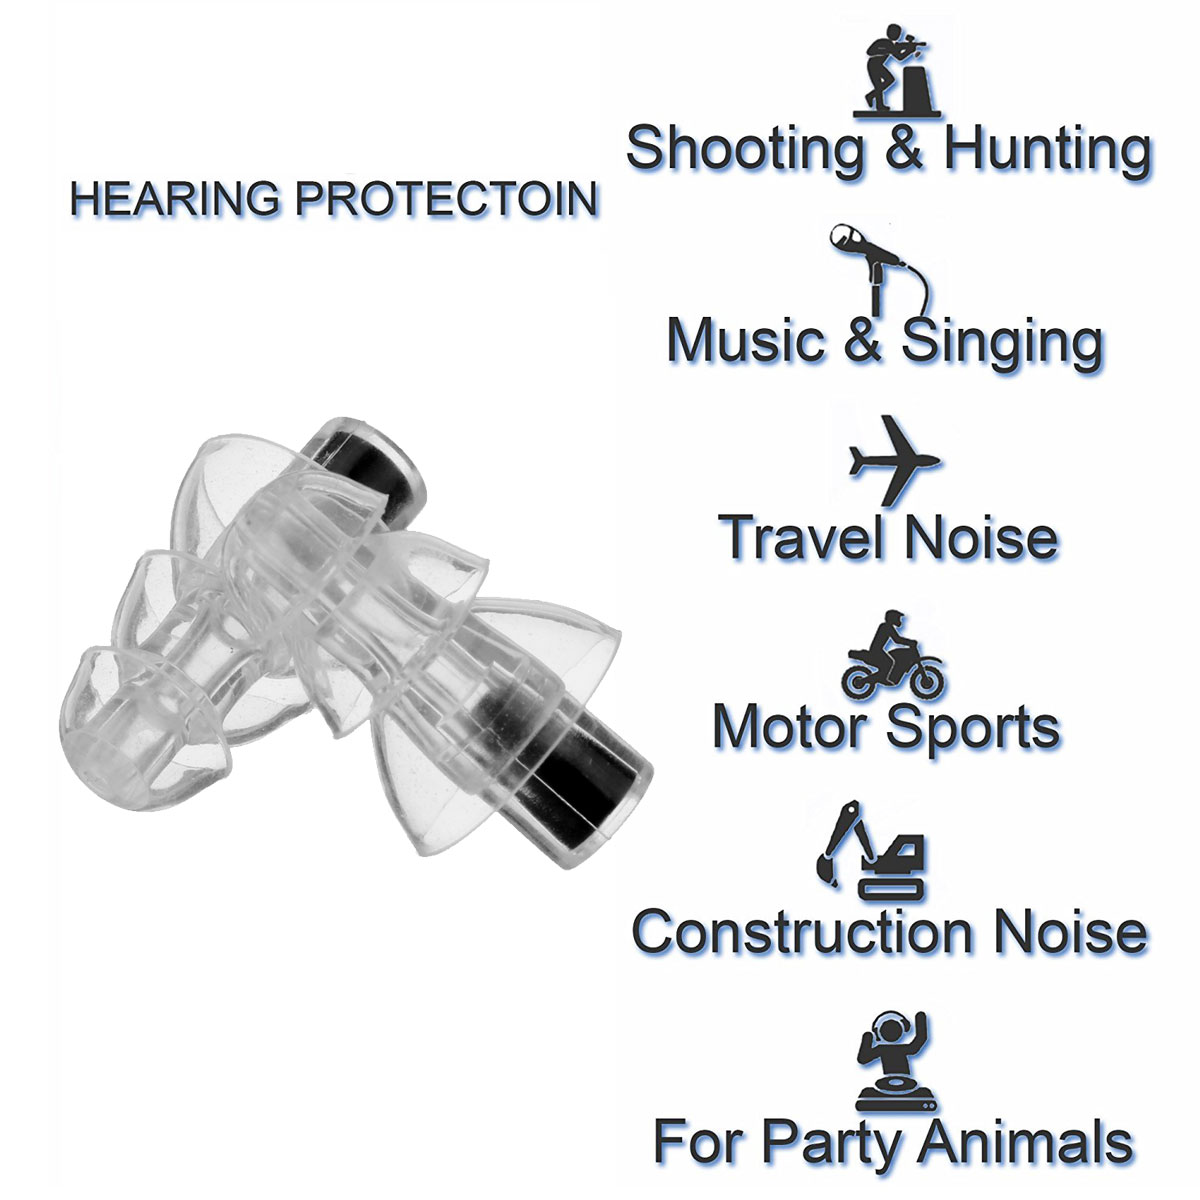 Noise Canceling Earplugs For Concert Musician Live Motorcycle Hearing Swimming Protection